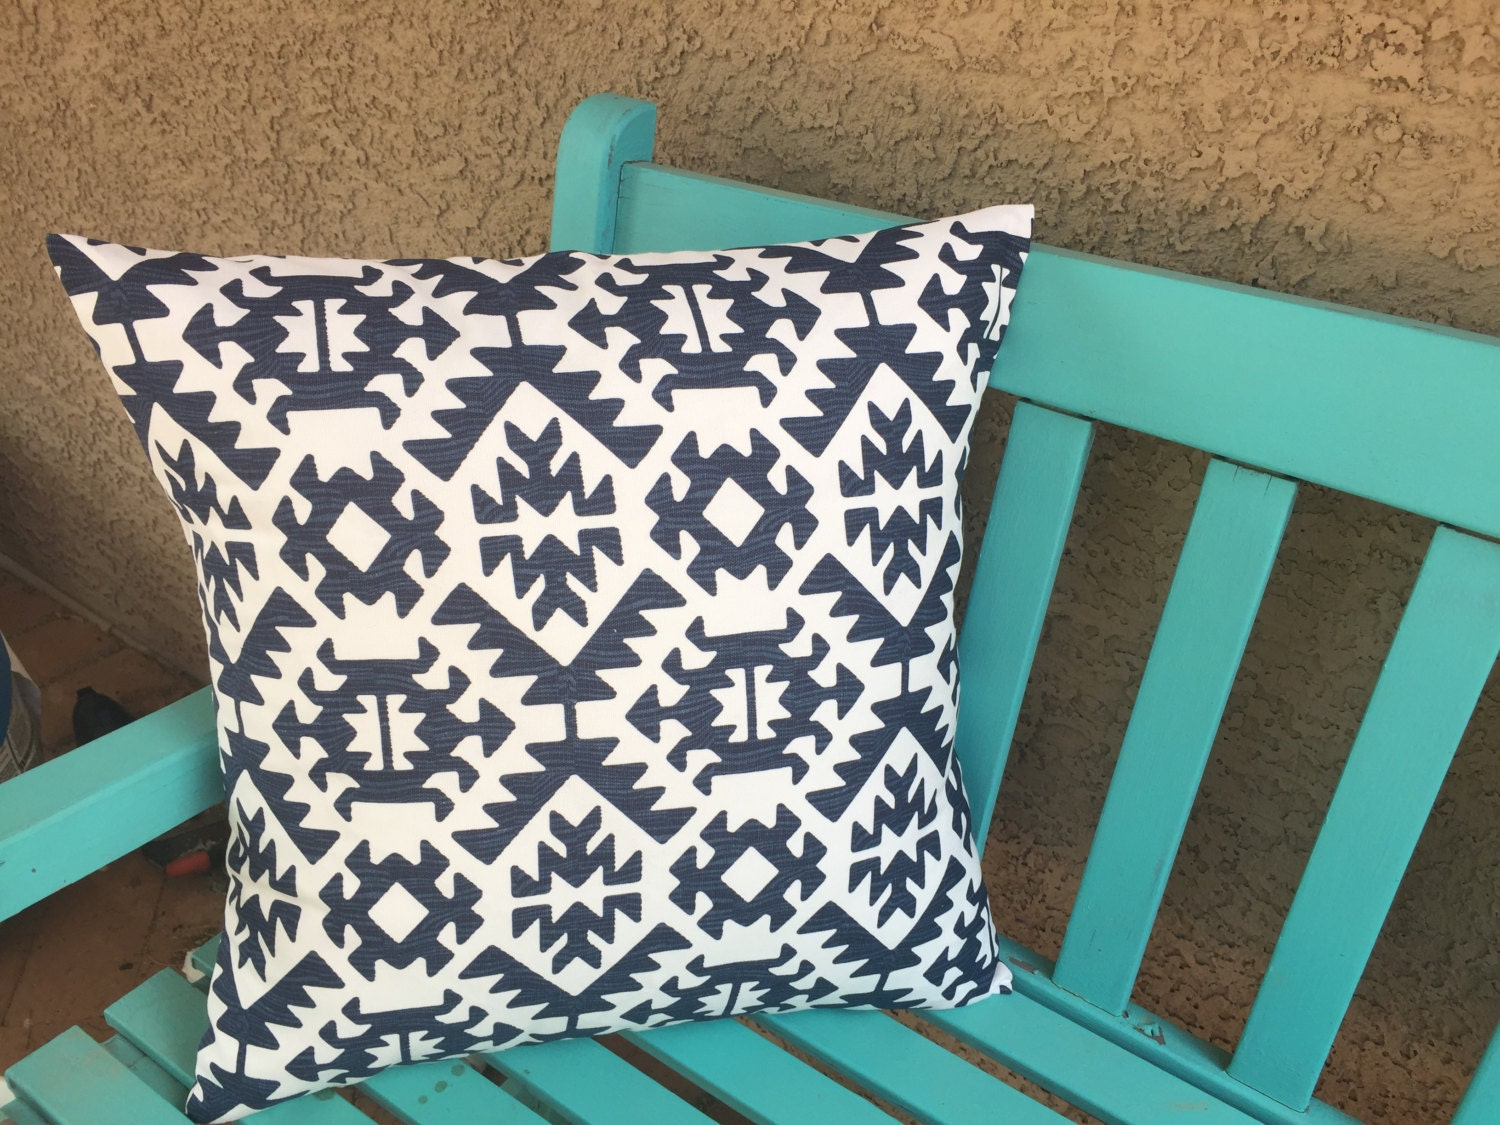 20 inch pillow cover from west elm. Need Assistance? Call please note prices and availability are subject to change at any time please note prices and availability are subject to change at any time.